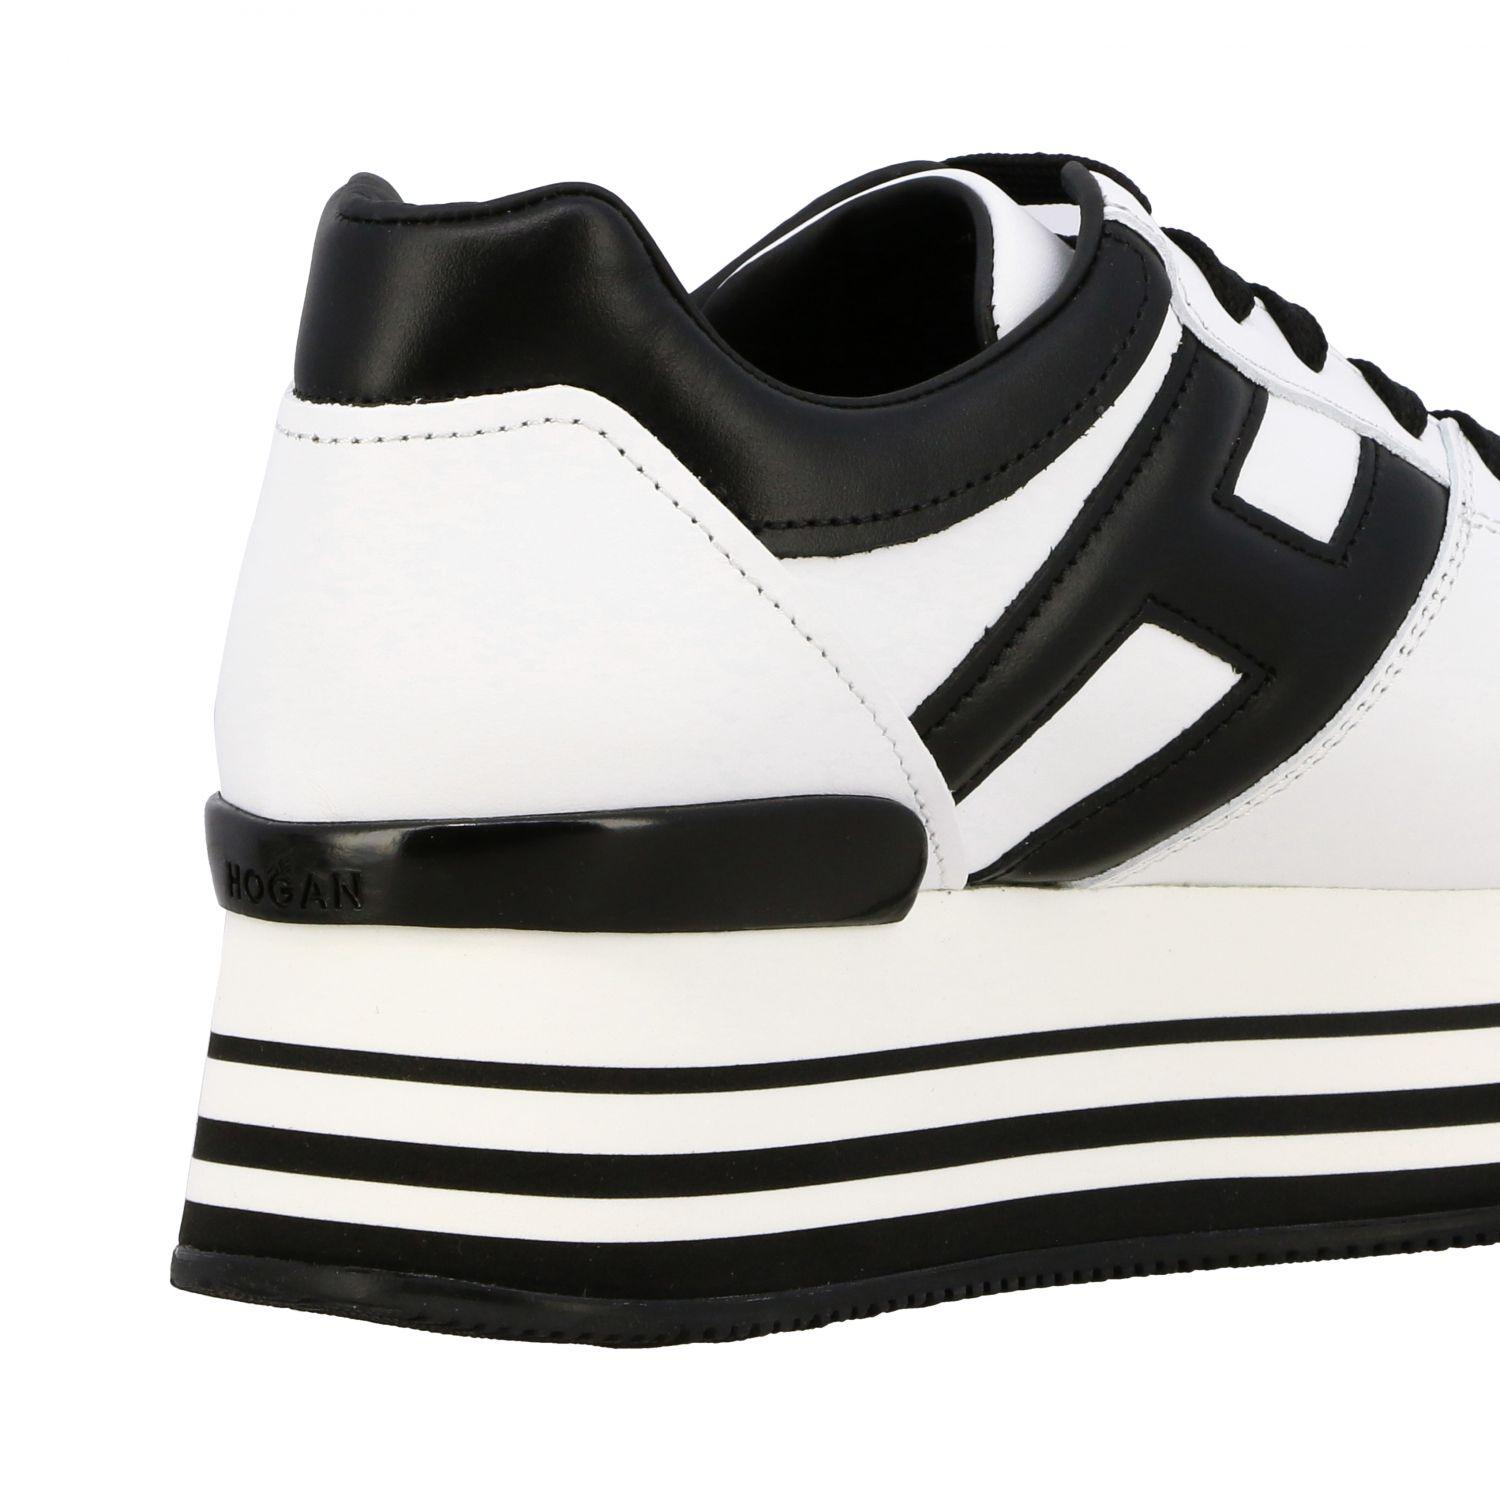 Hogan H222 Black And White Leather Sneakers - Save 65% - Lyst